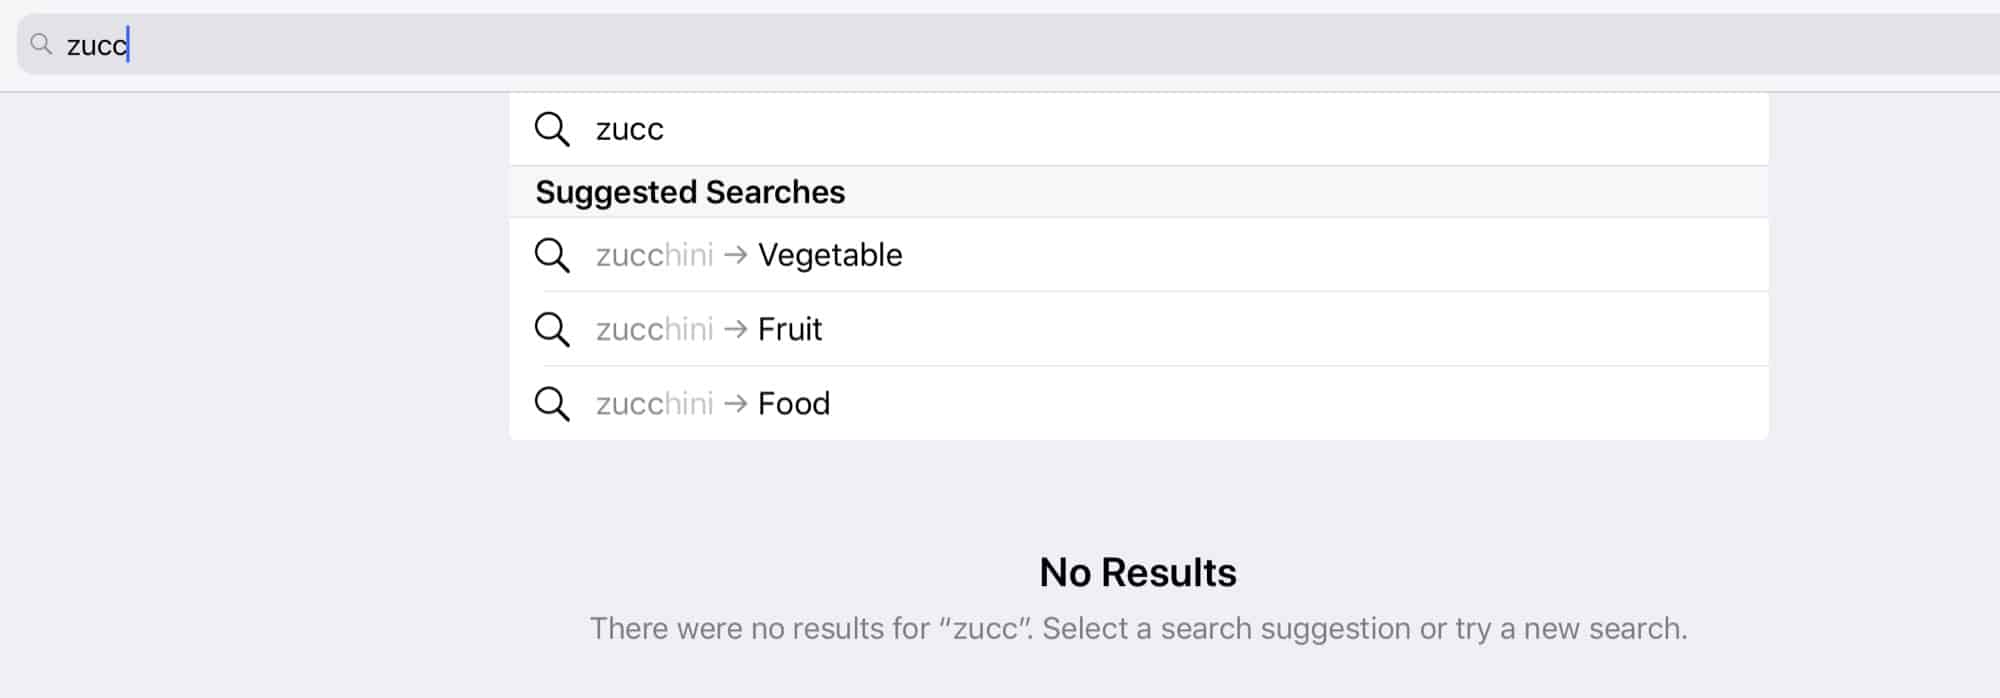 Zucchini as fruit?!